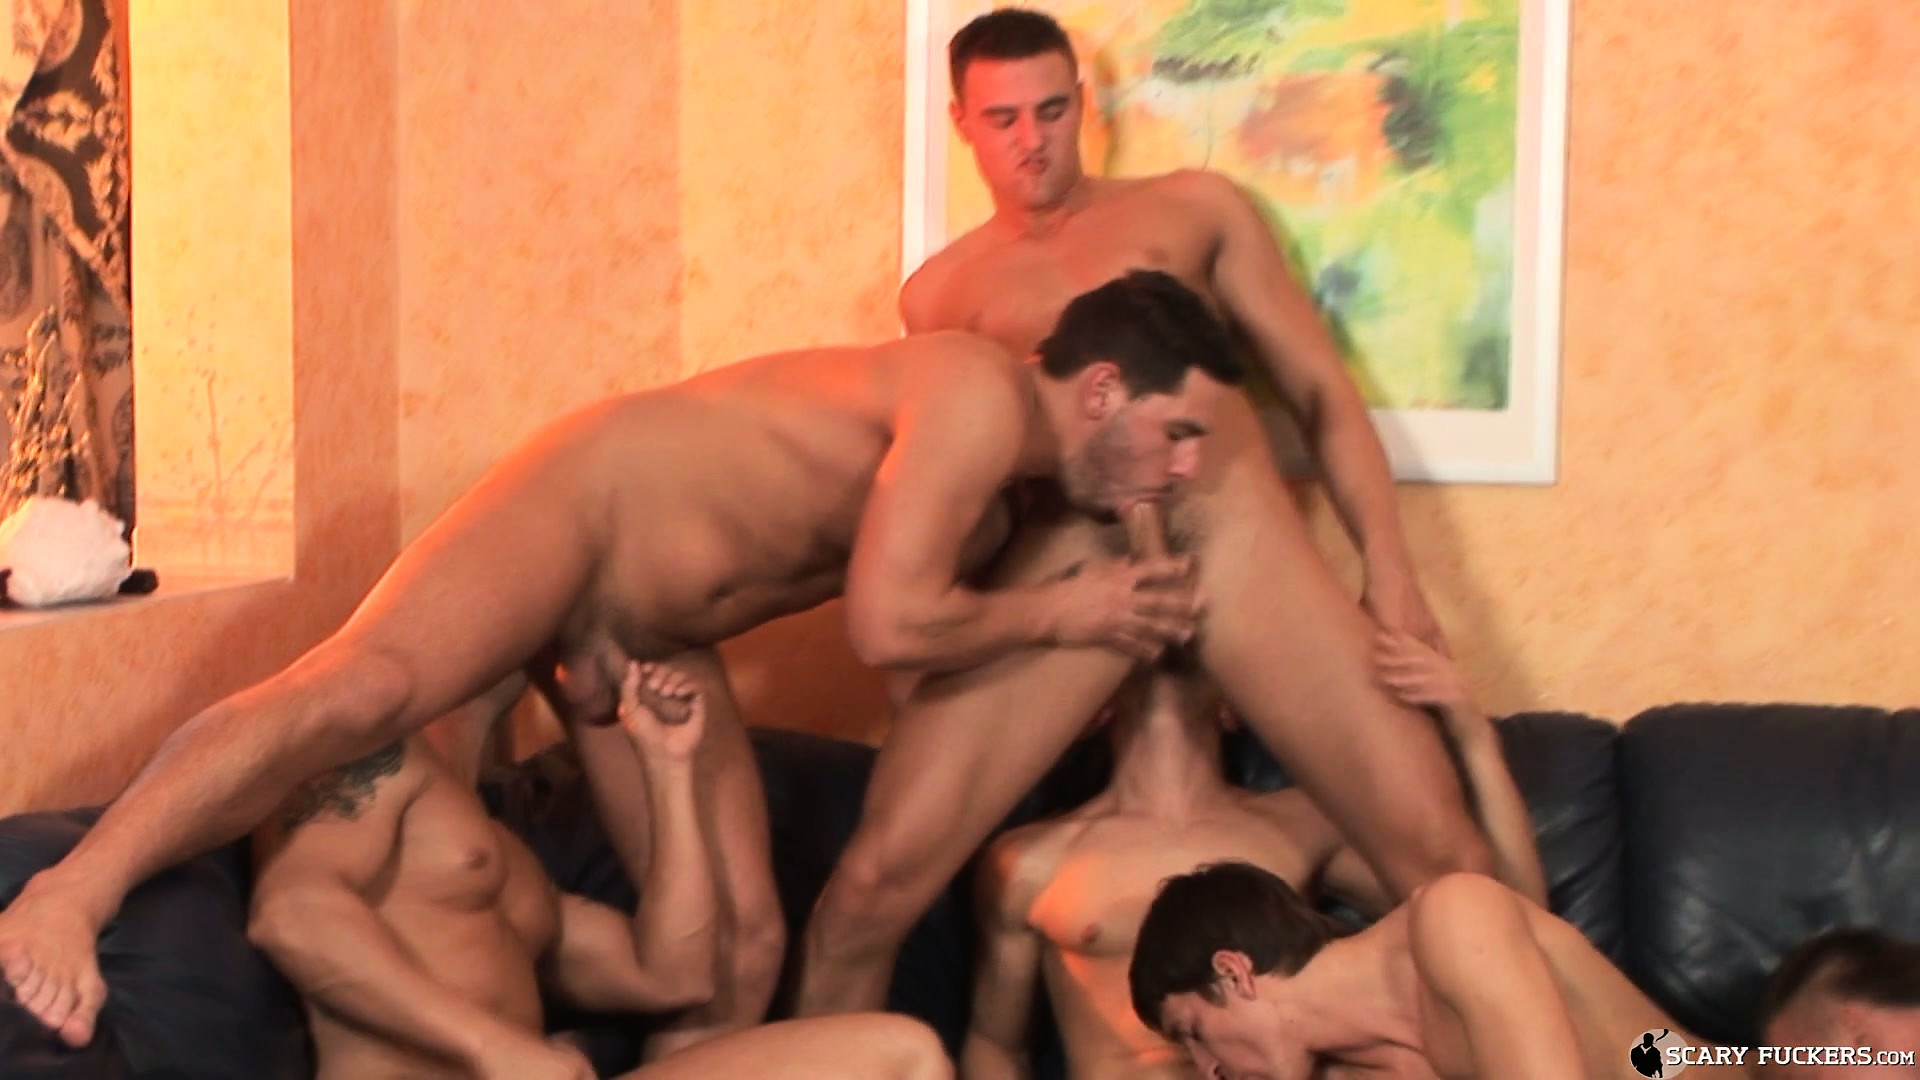 Porn Tube of The Birthday Boy Is About To Get His Present In The Form Of Hot Gay Action